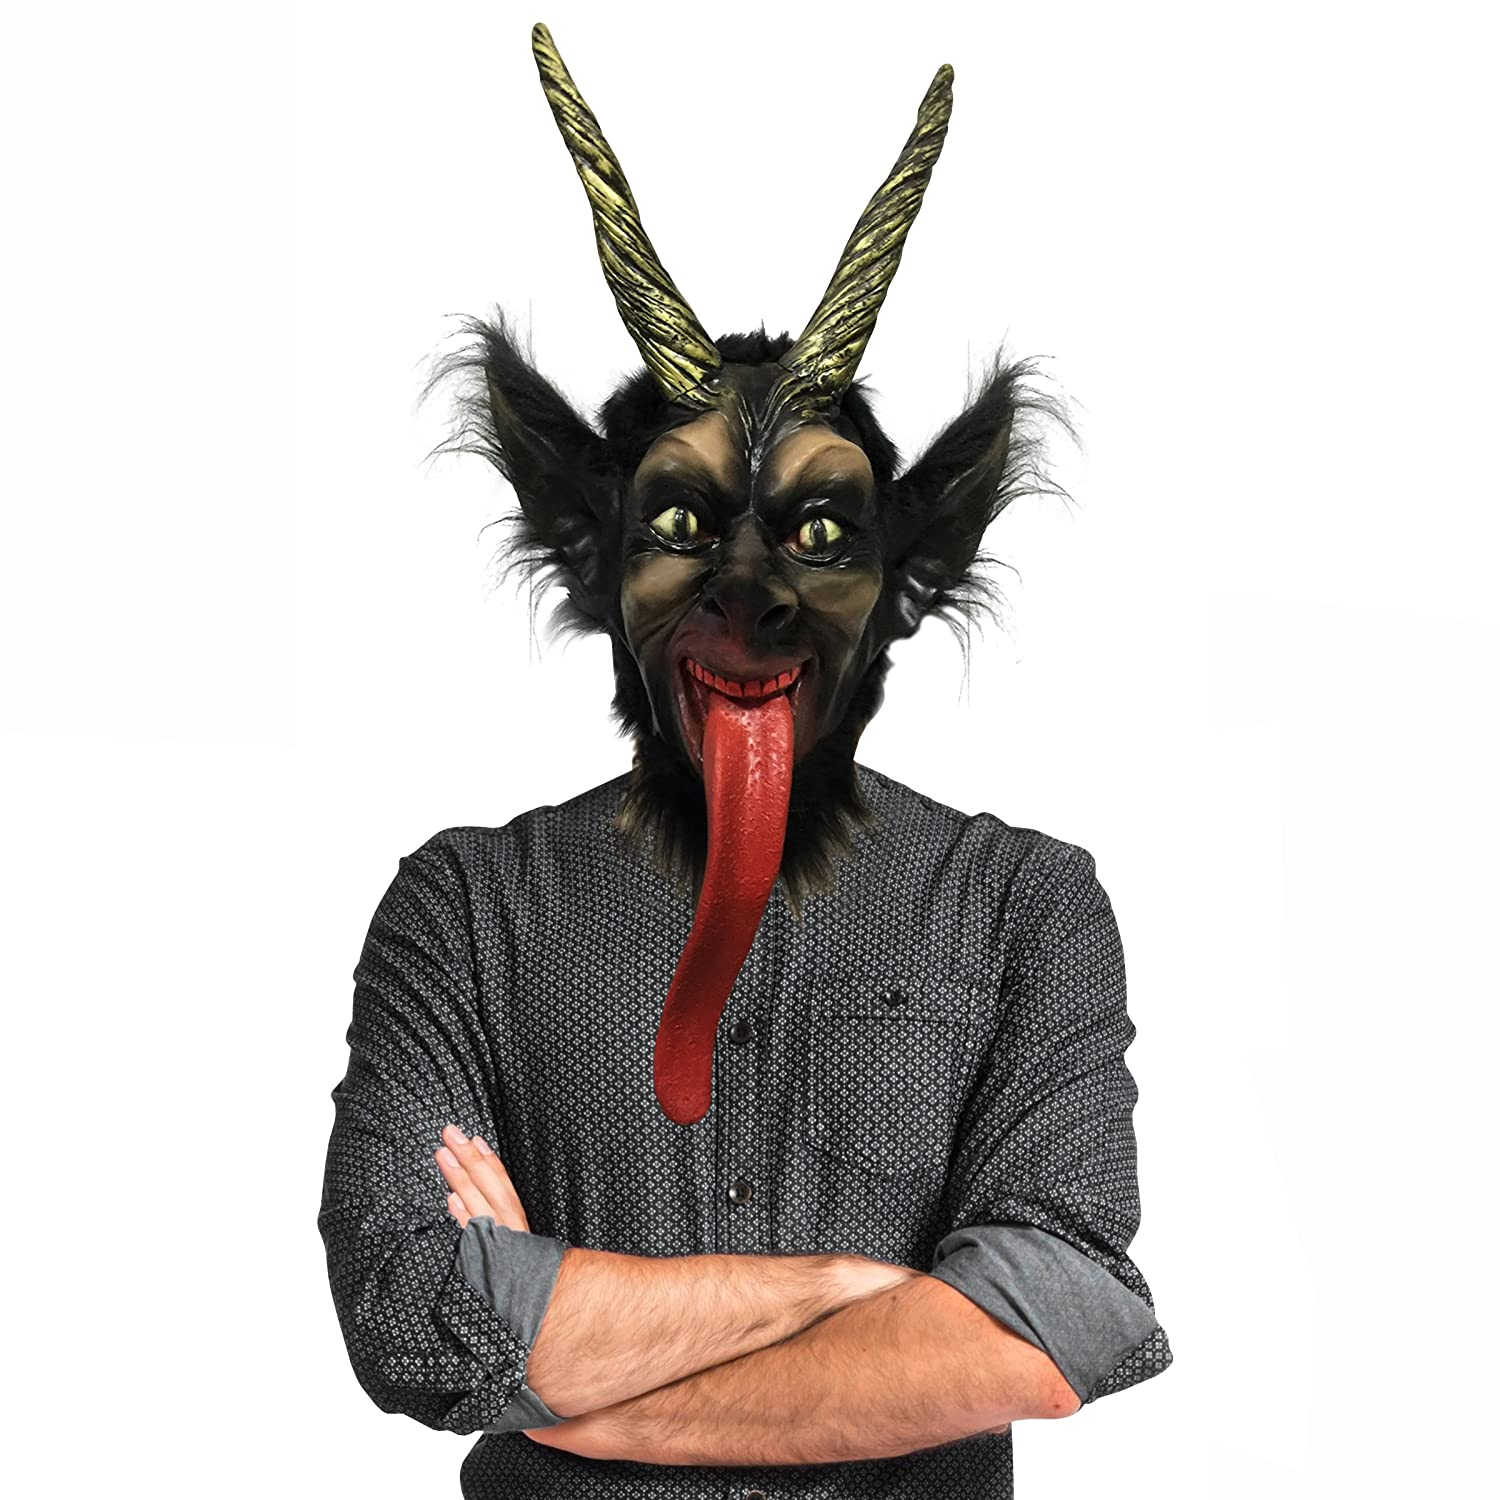 Amazon.com: Holiday Christmas Krampus Mask By Off the Wall Toys ...